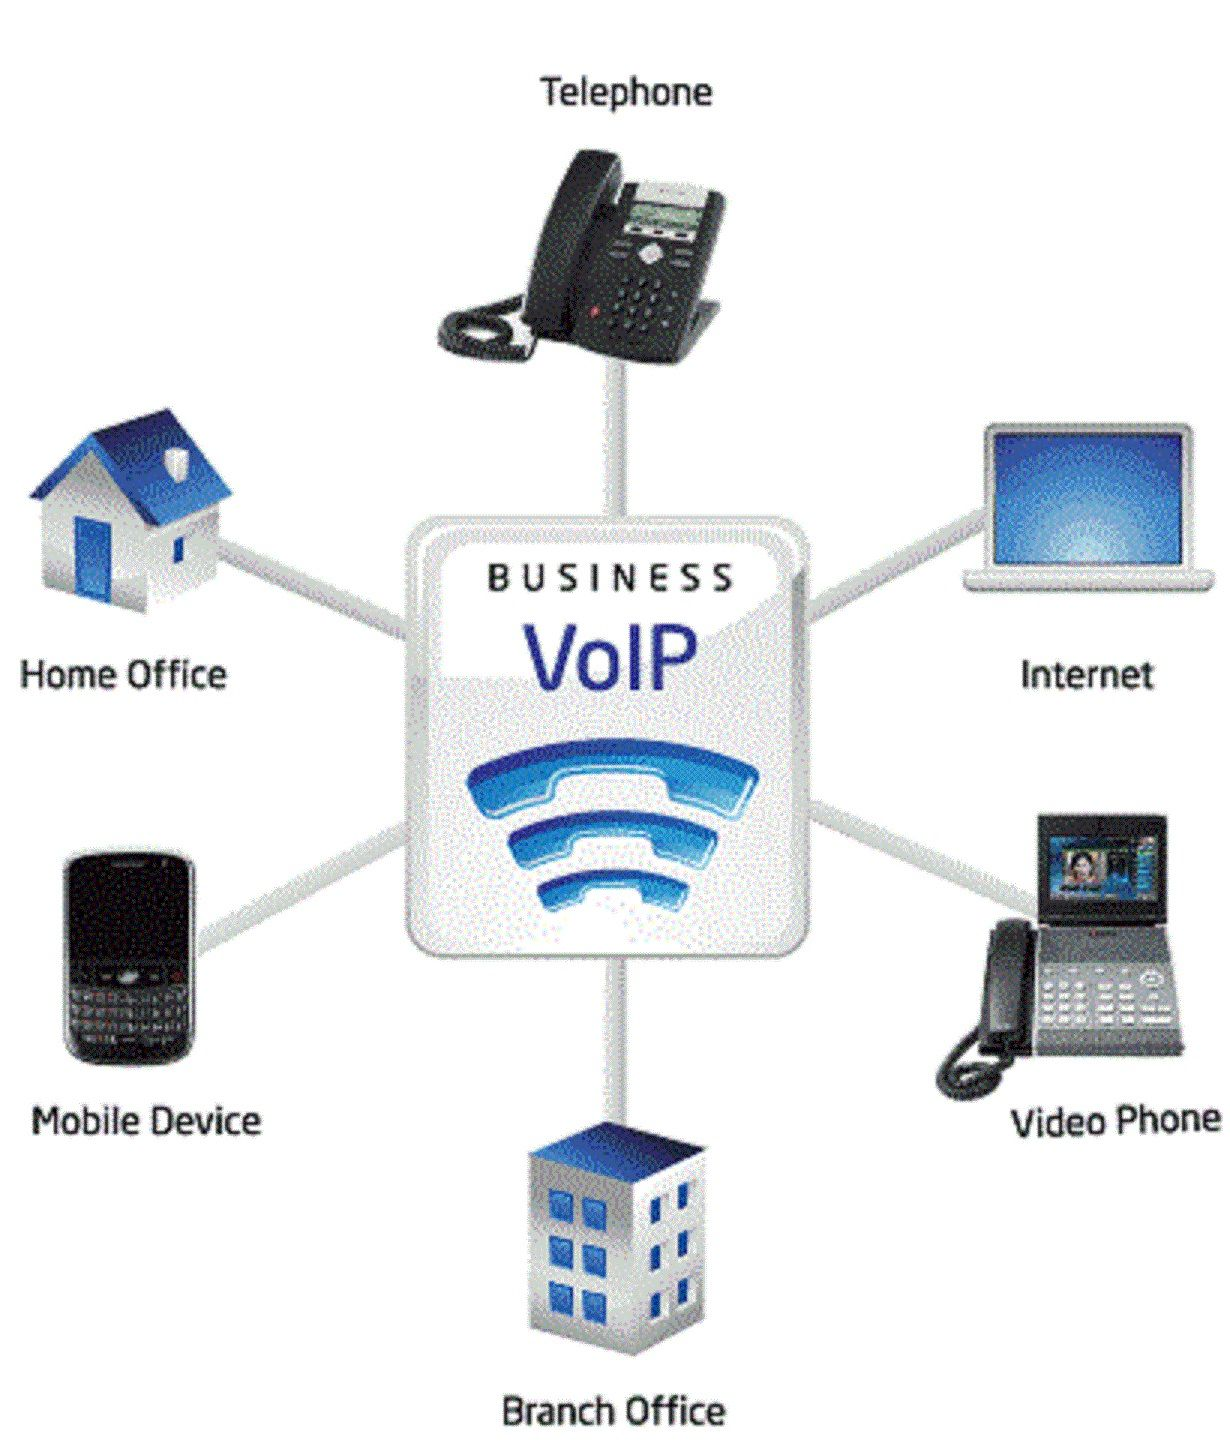 Pin by Howard James on Telecube | Pinterest | Voip solutions